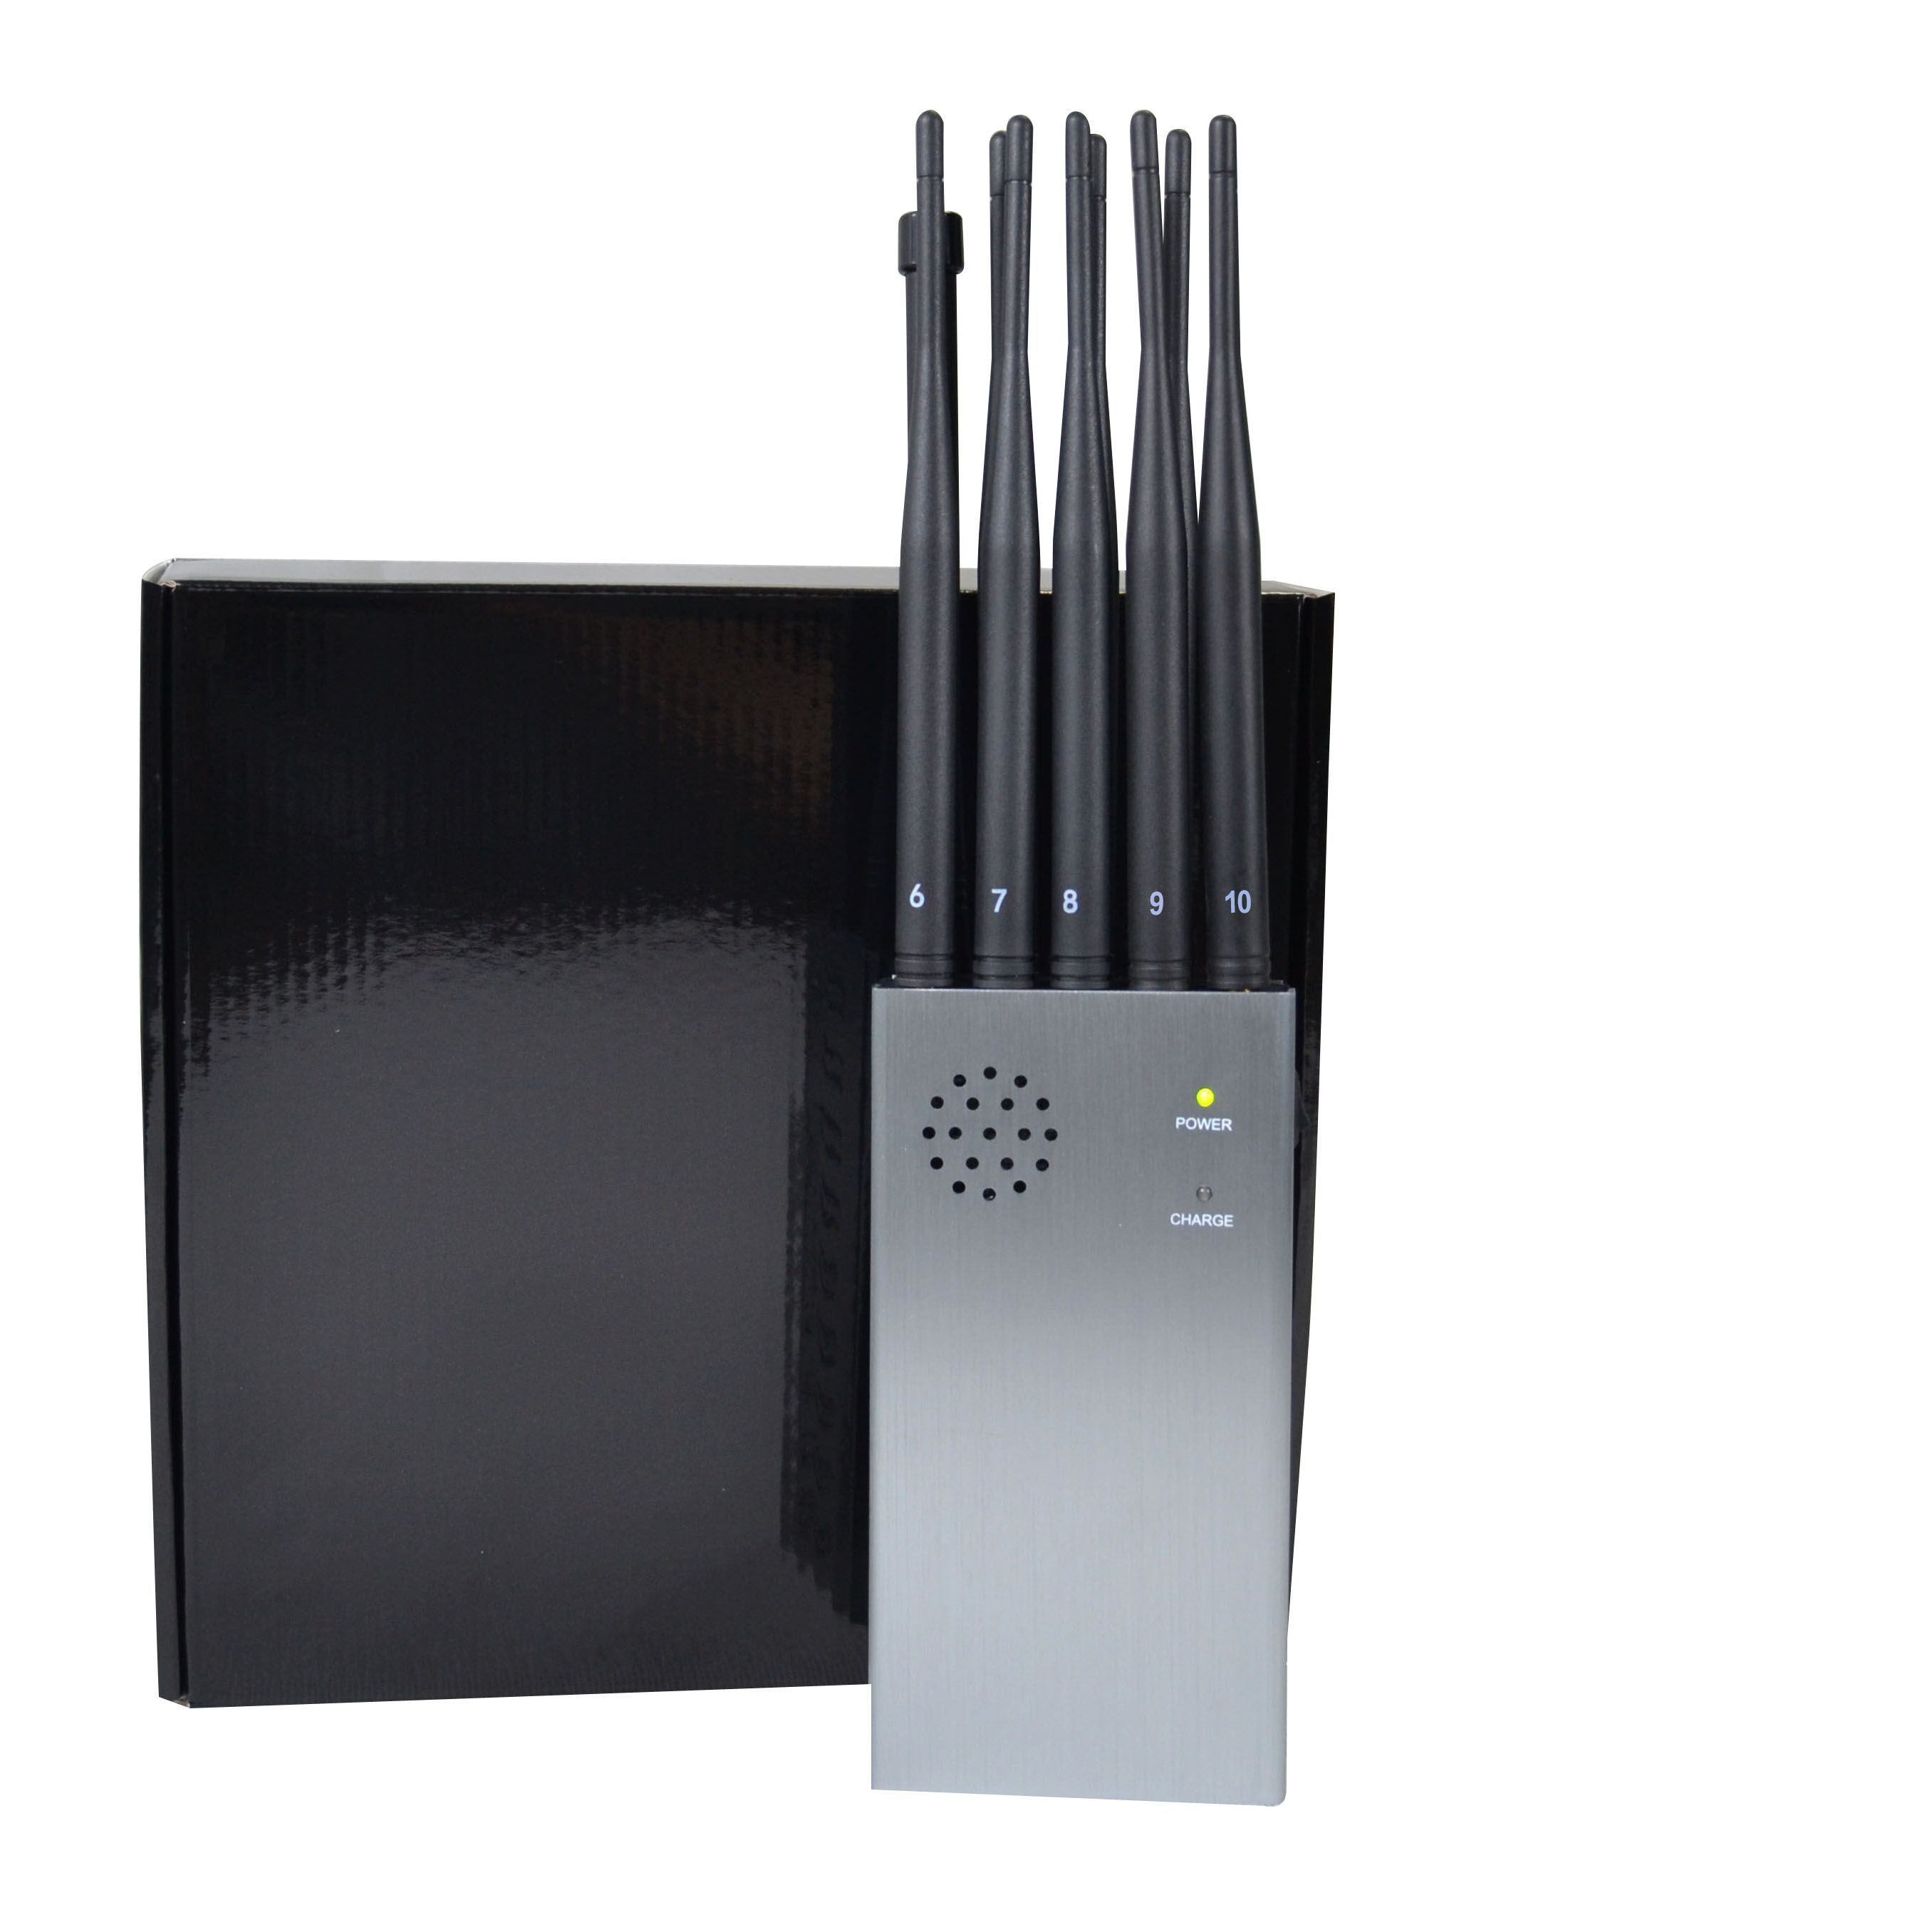 make phone jammer legal - China King Jammer with Portable 10 Antennas Including 2g 3G 5g 4G WiFi, GPS Remote Control Lojack Signals - China 8000mA Battery Jammer, Large Volume Power Signal Blocker